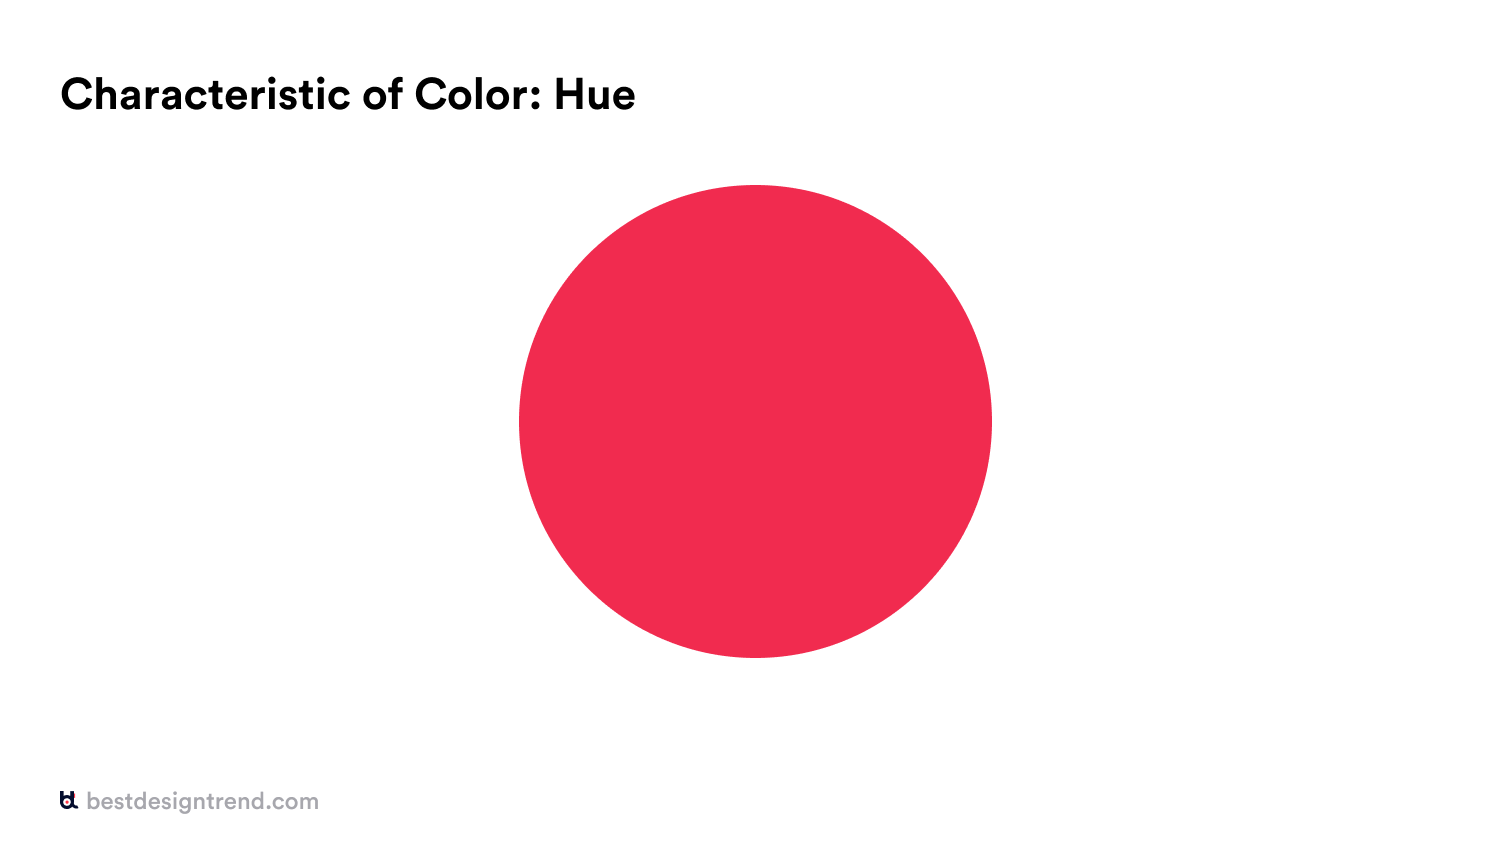 characteristic of color: hue